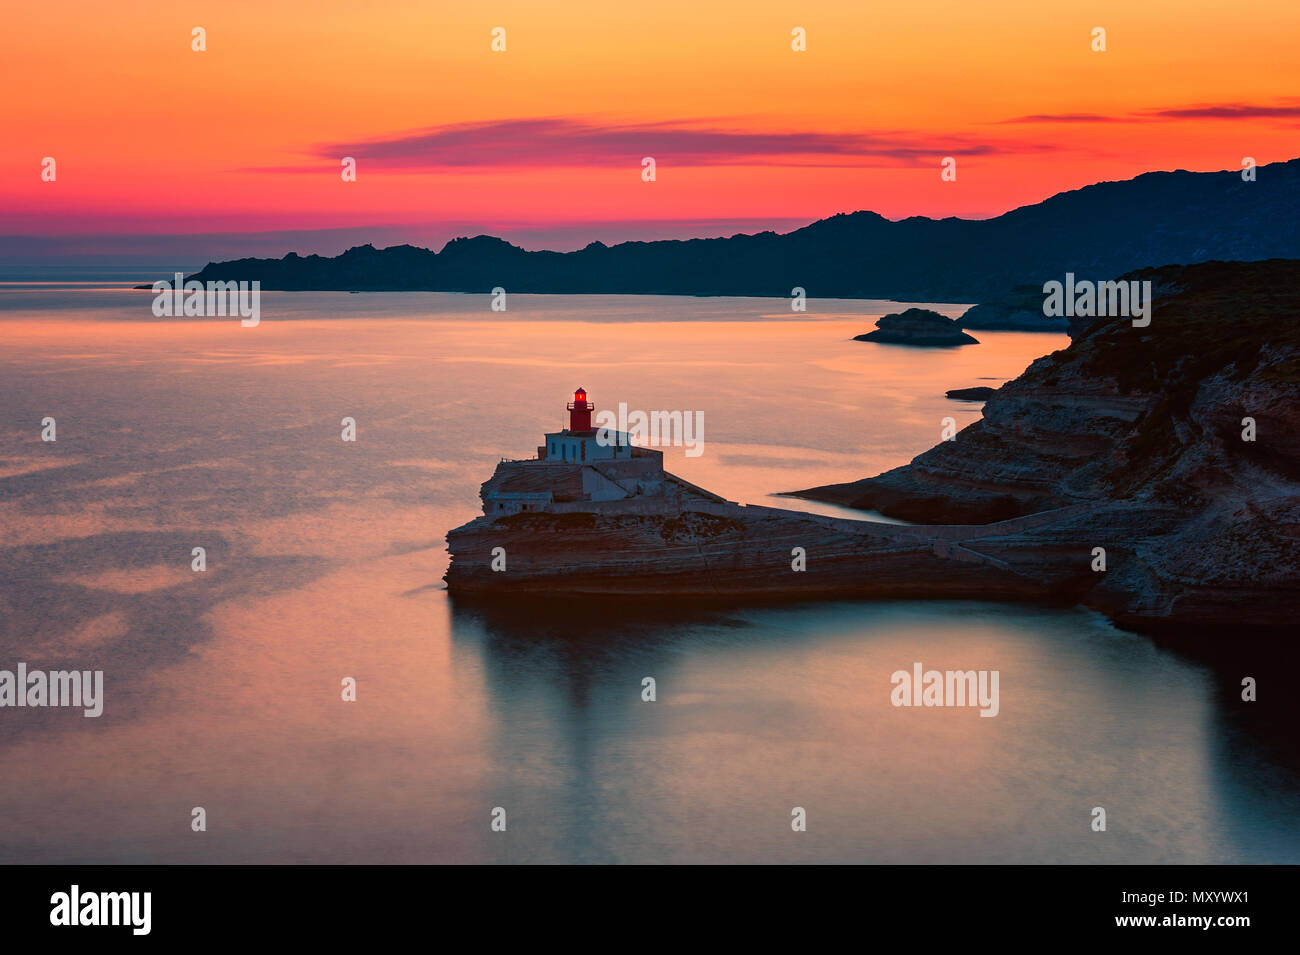 Lighthouse in Bonifacio, Corsica, France at Sunset - Stock Image